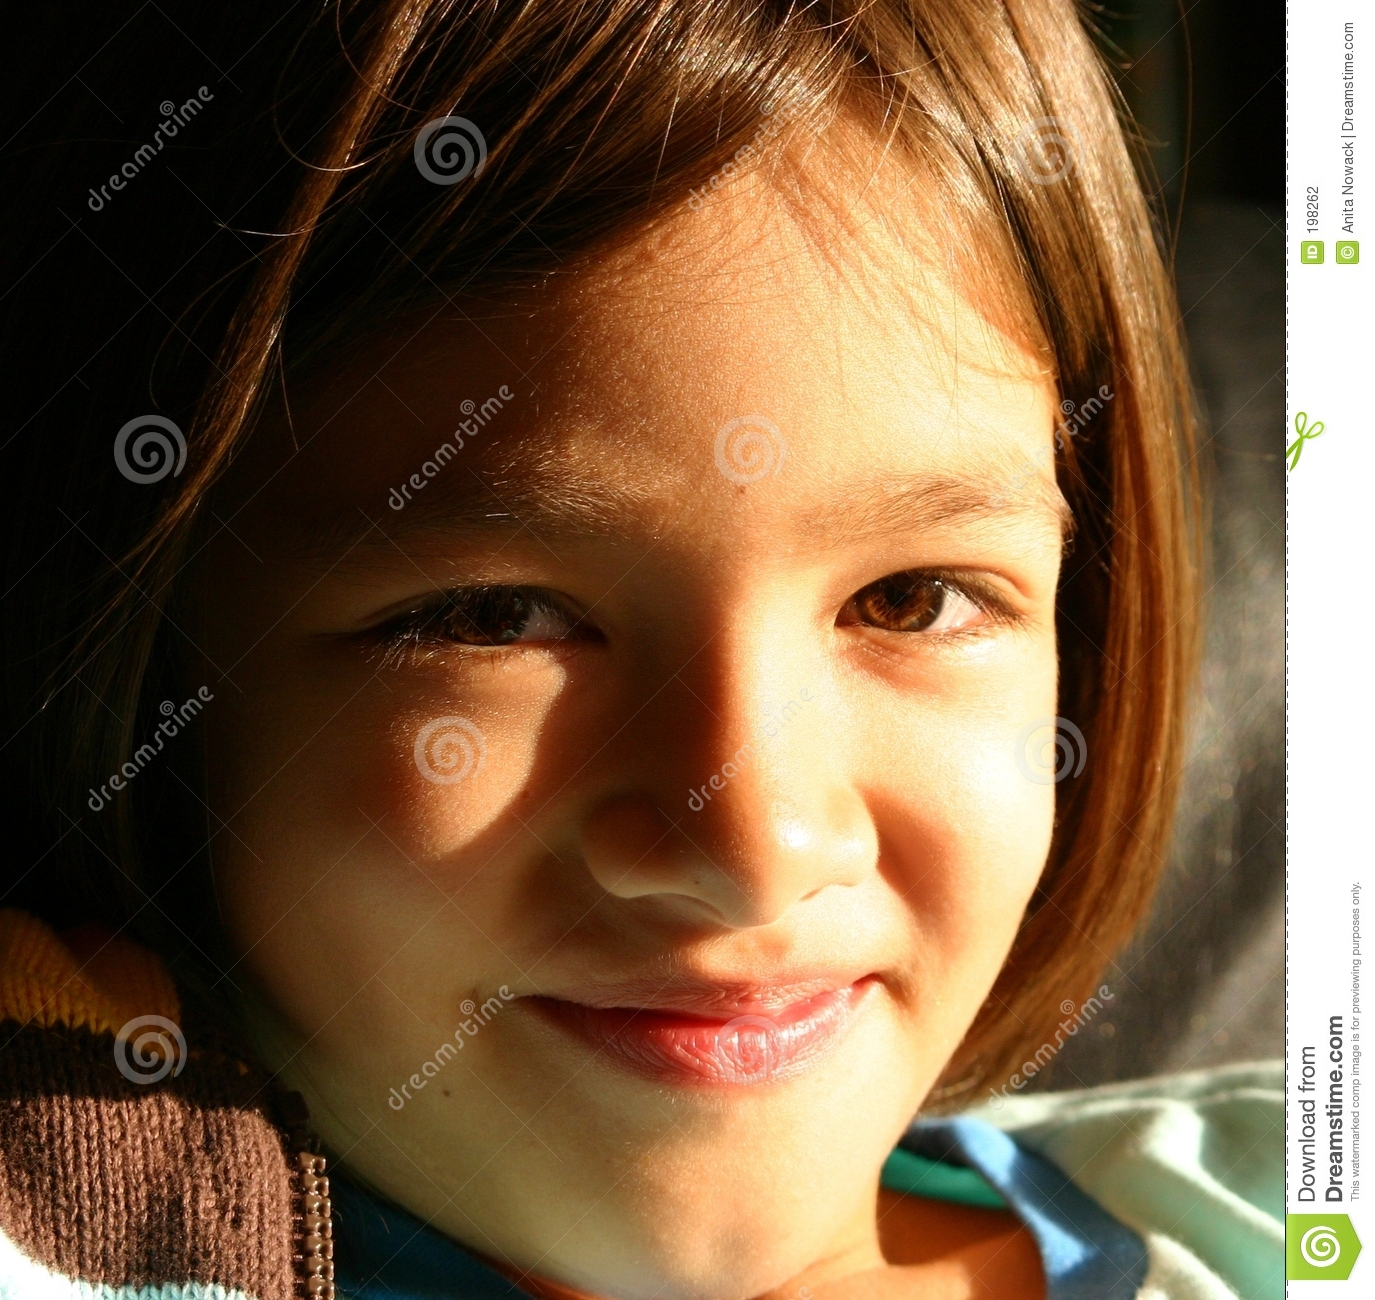 Girl smiling to a brighter future